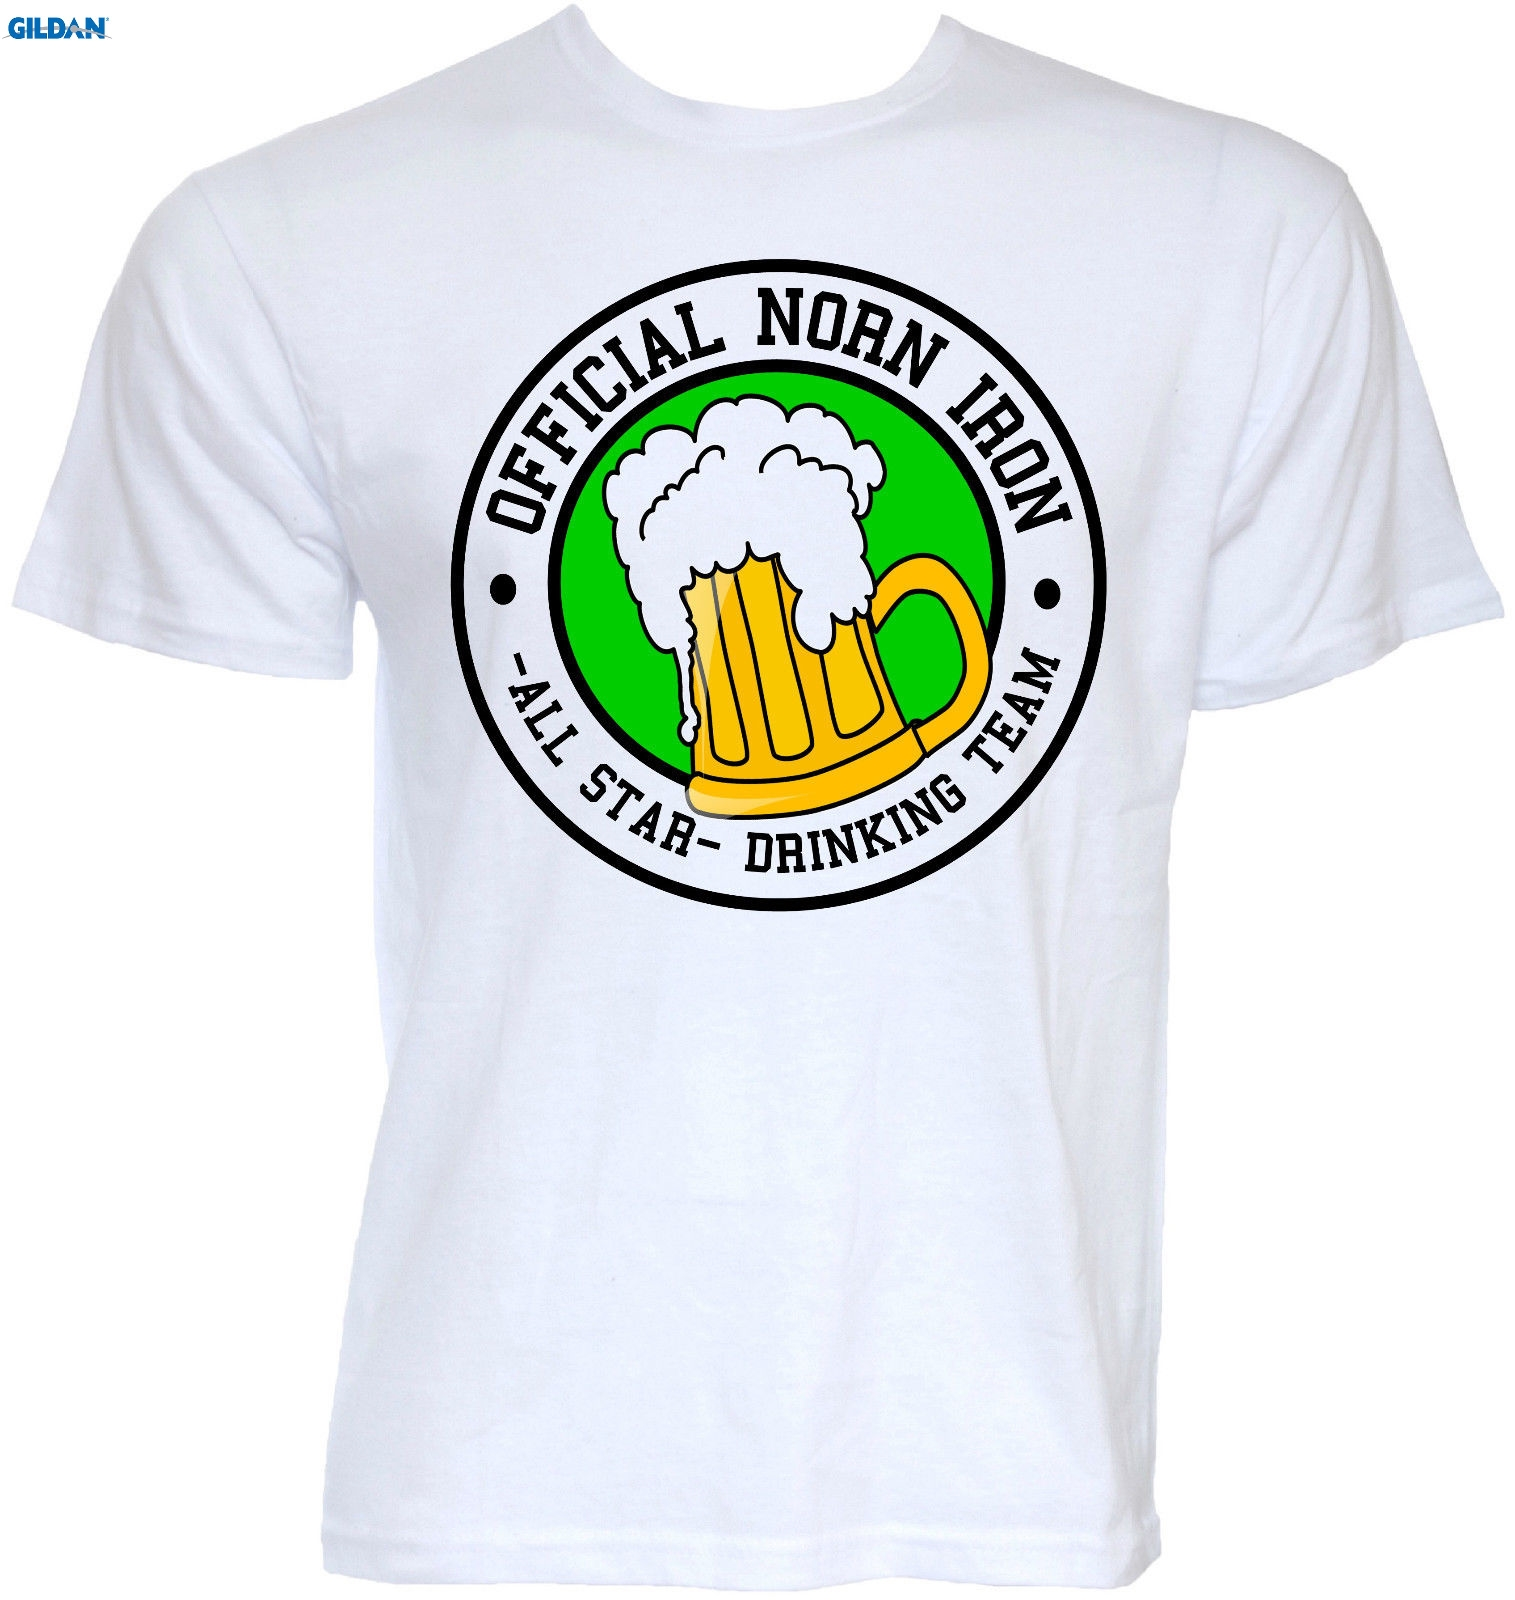 GILDAN MENS FUNNY COOL NOVELTY NORTHERN IRELAND ULSTER IRISH BEER T-SHIRTS GIFTS IDEAS Fashion T Shirts Straight 100% Cotton